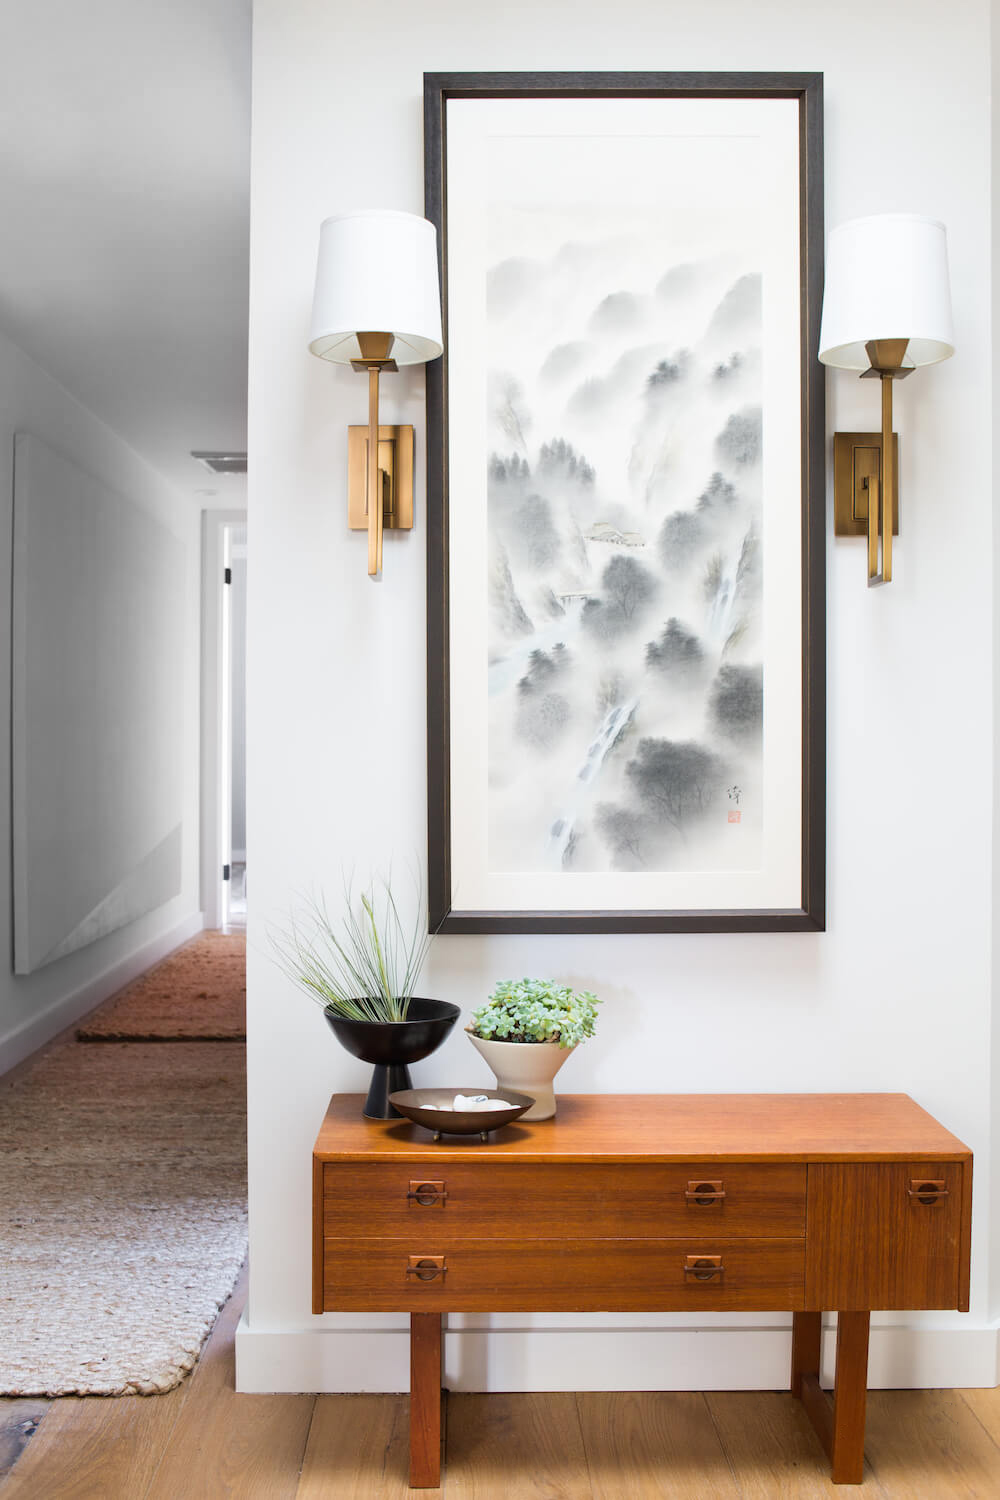 20 Statement Sconces - roomfortuesday.com